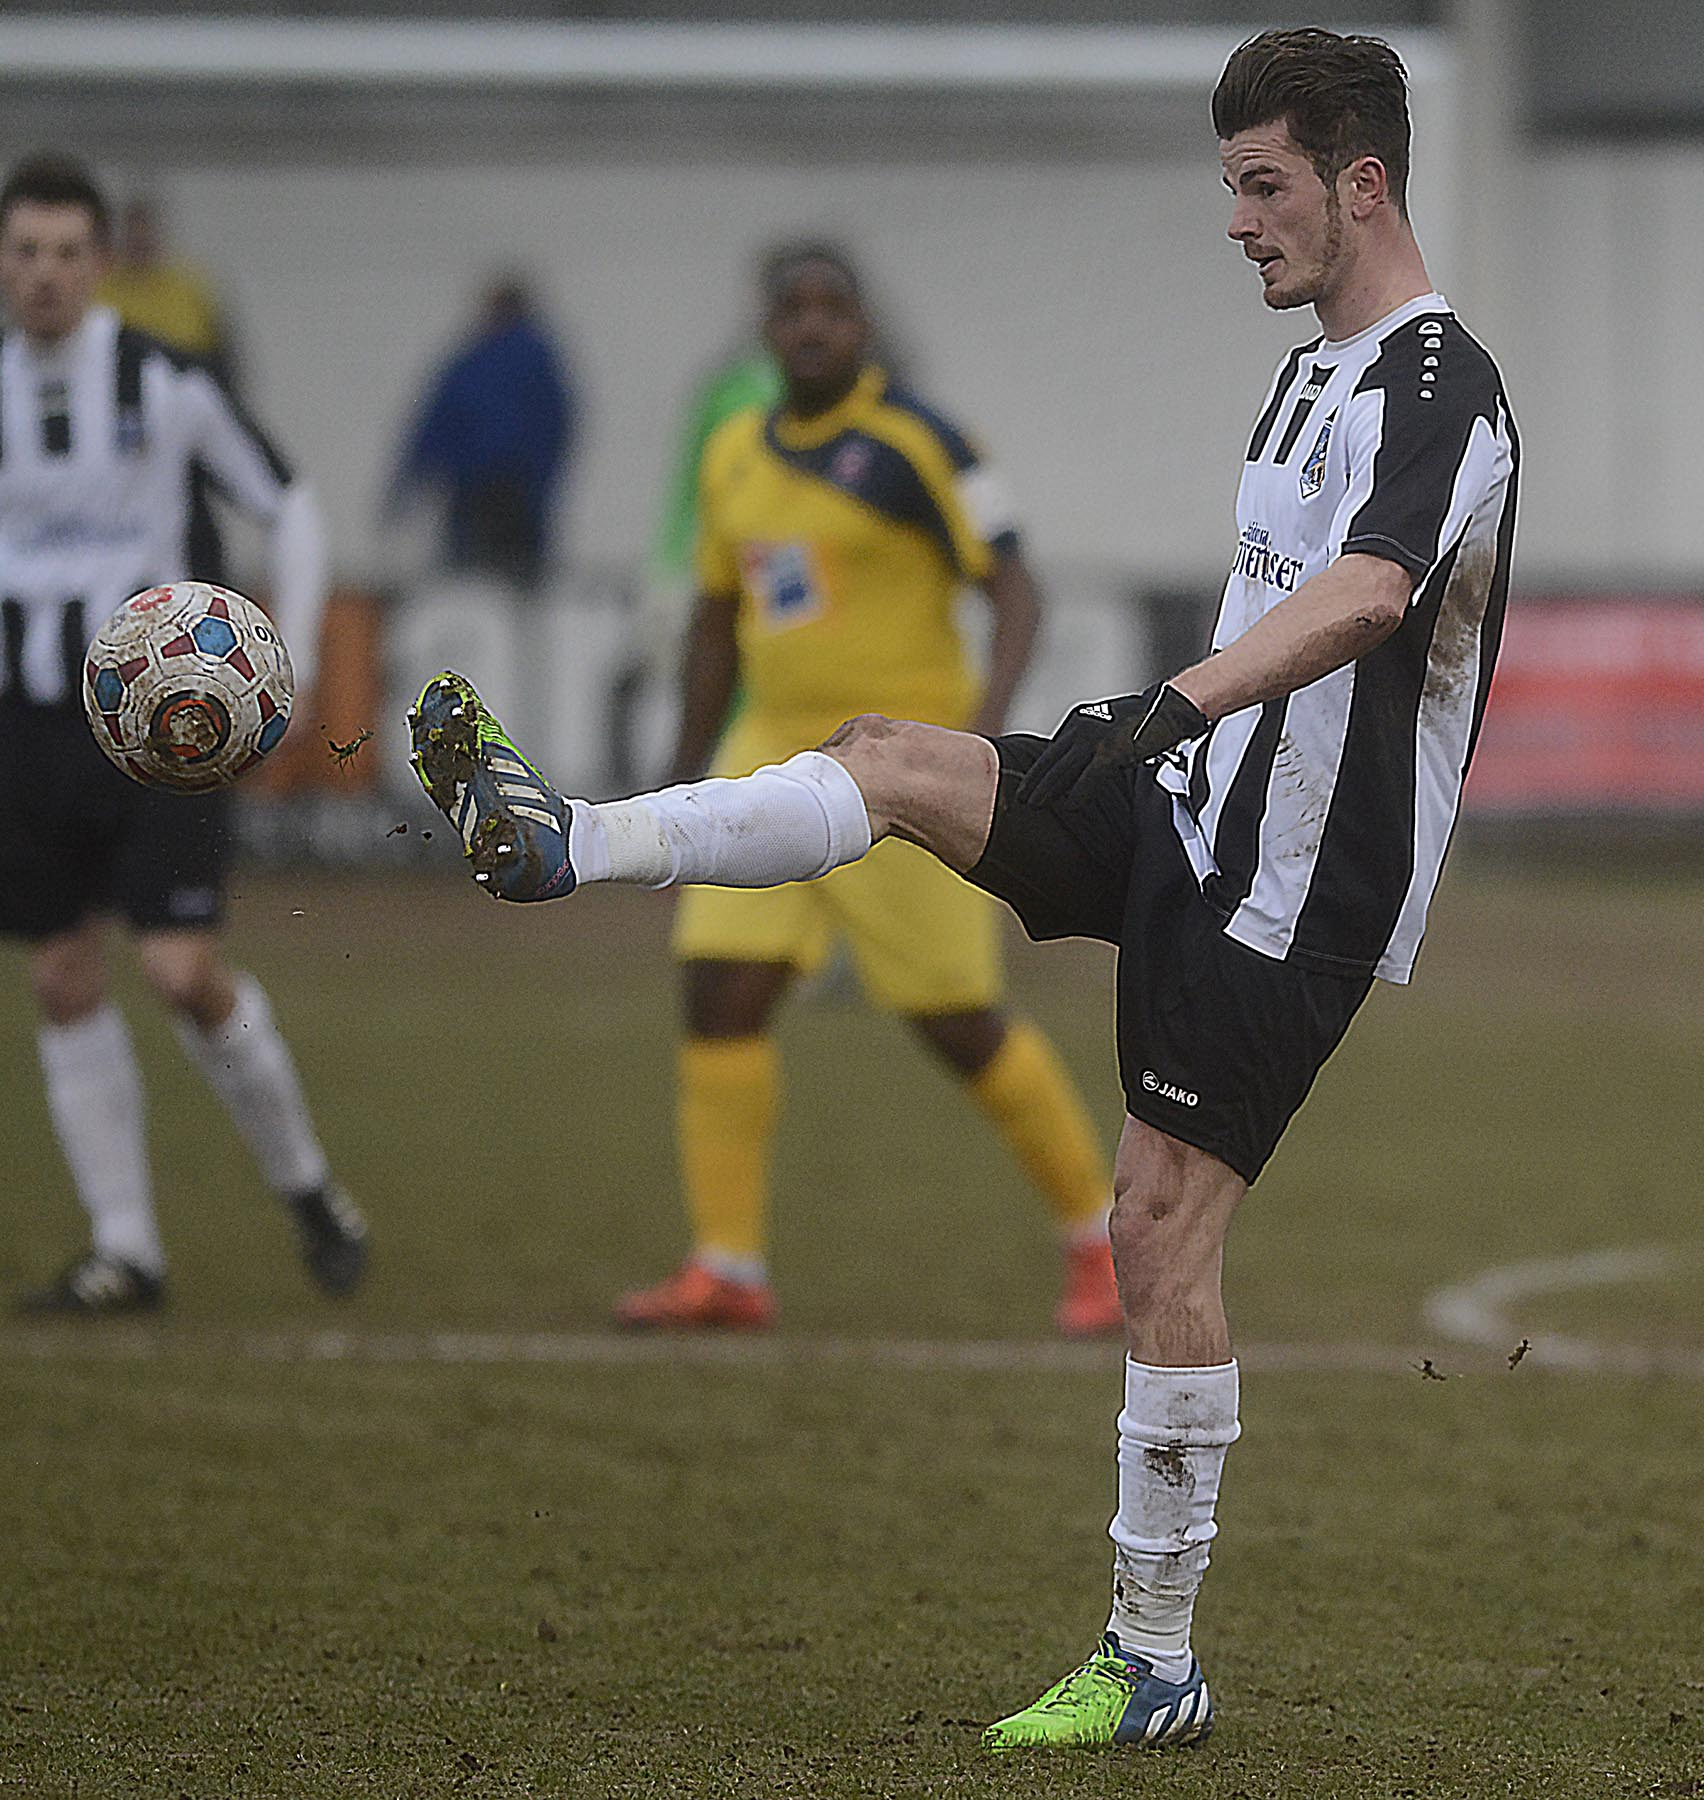 Ryan Upward scored the winning goal in injury time as Maidenhead United beat Havant & Waterlooville 2-1 in the FA Cup.